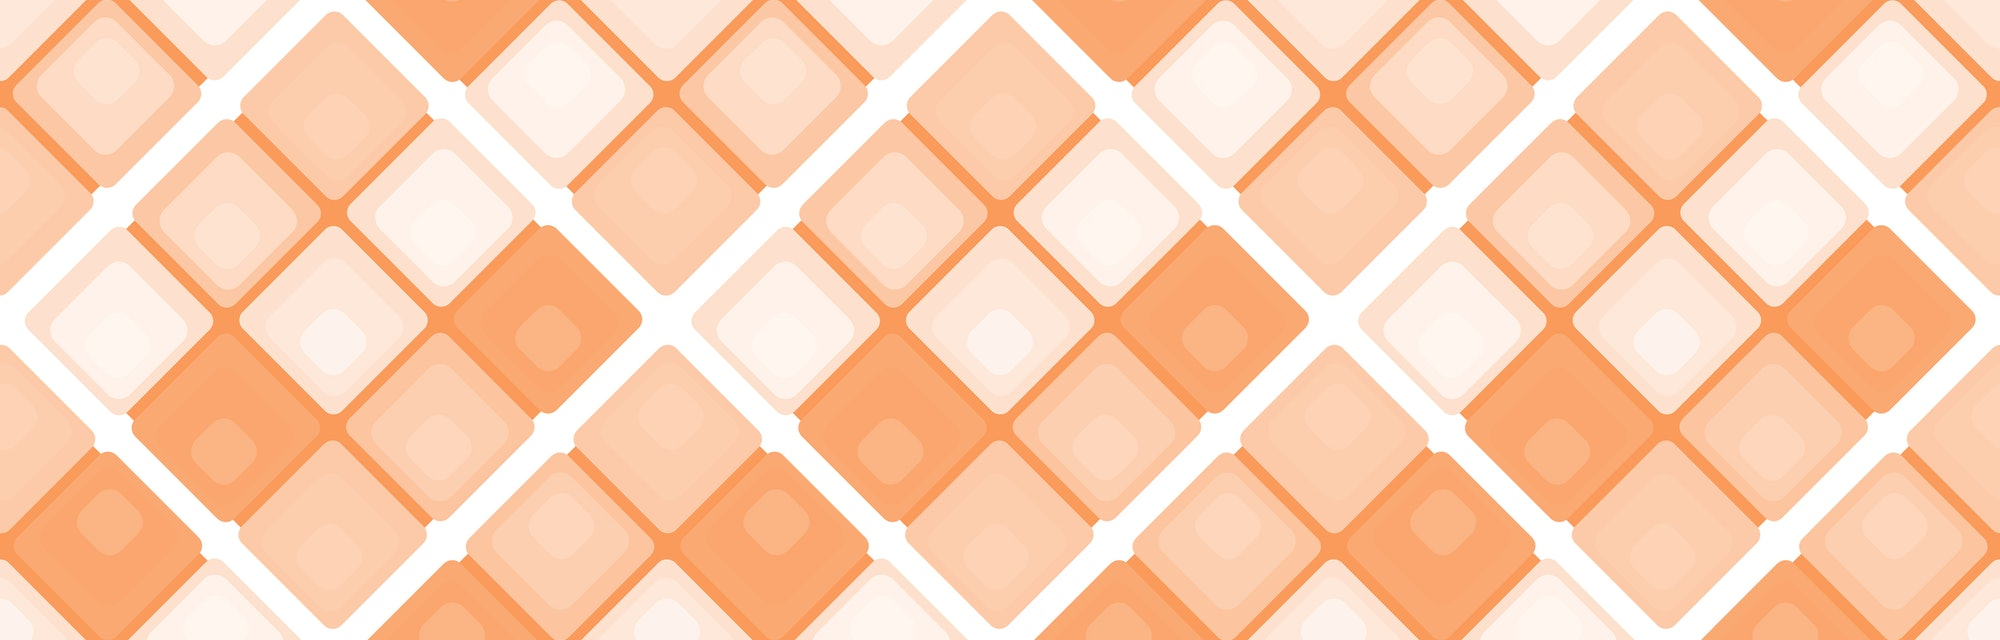 Rubic cubes , illustration, vector on white background